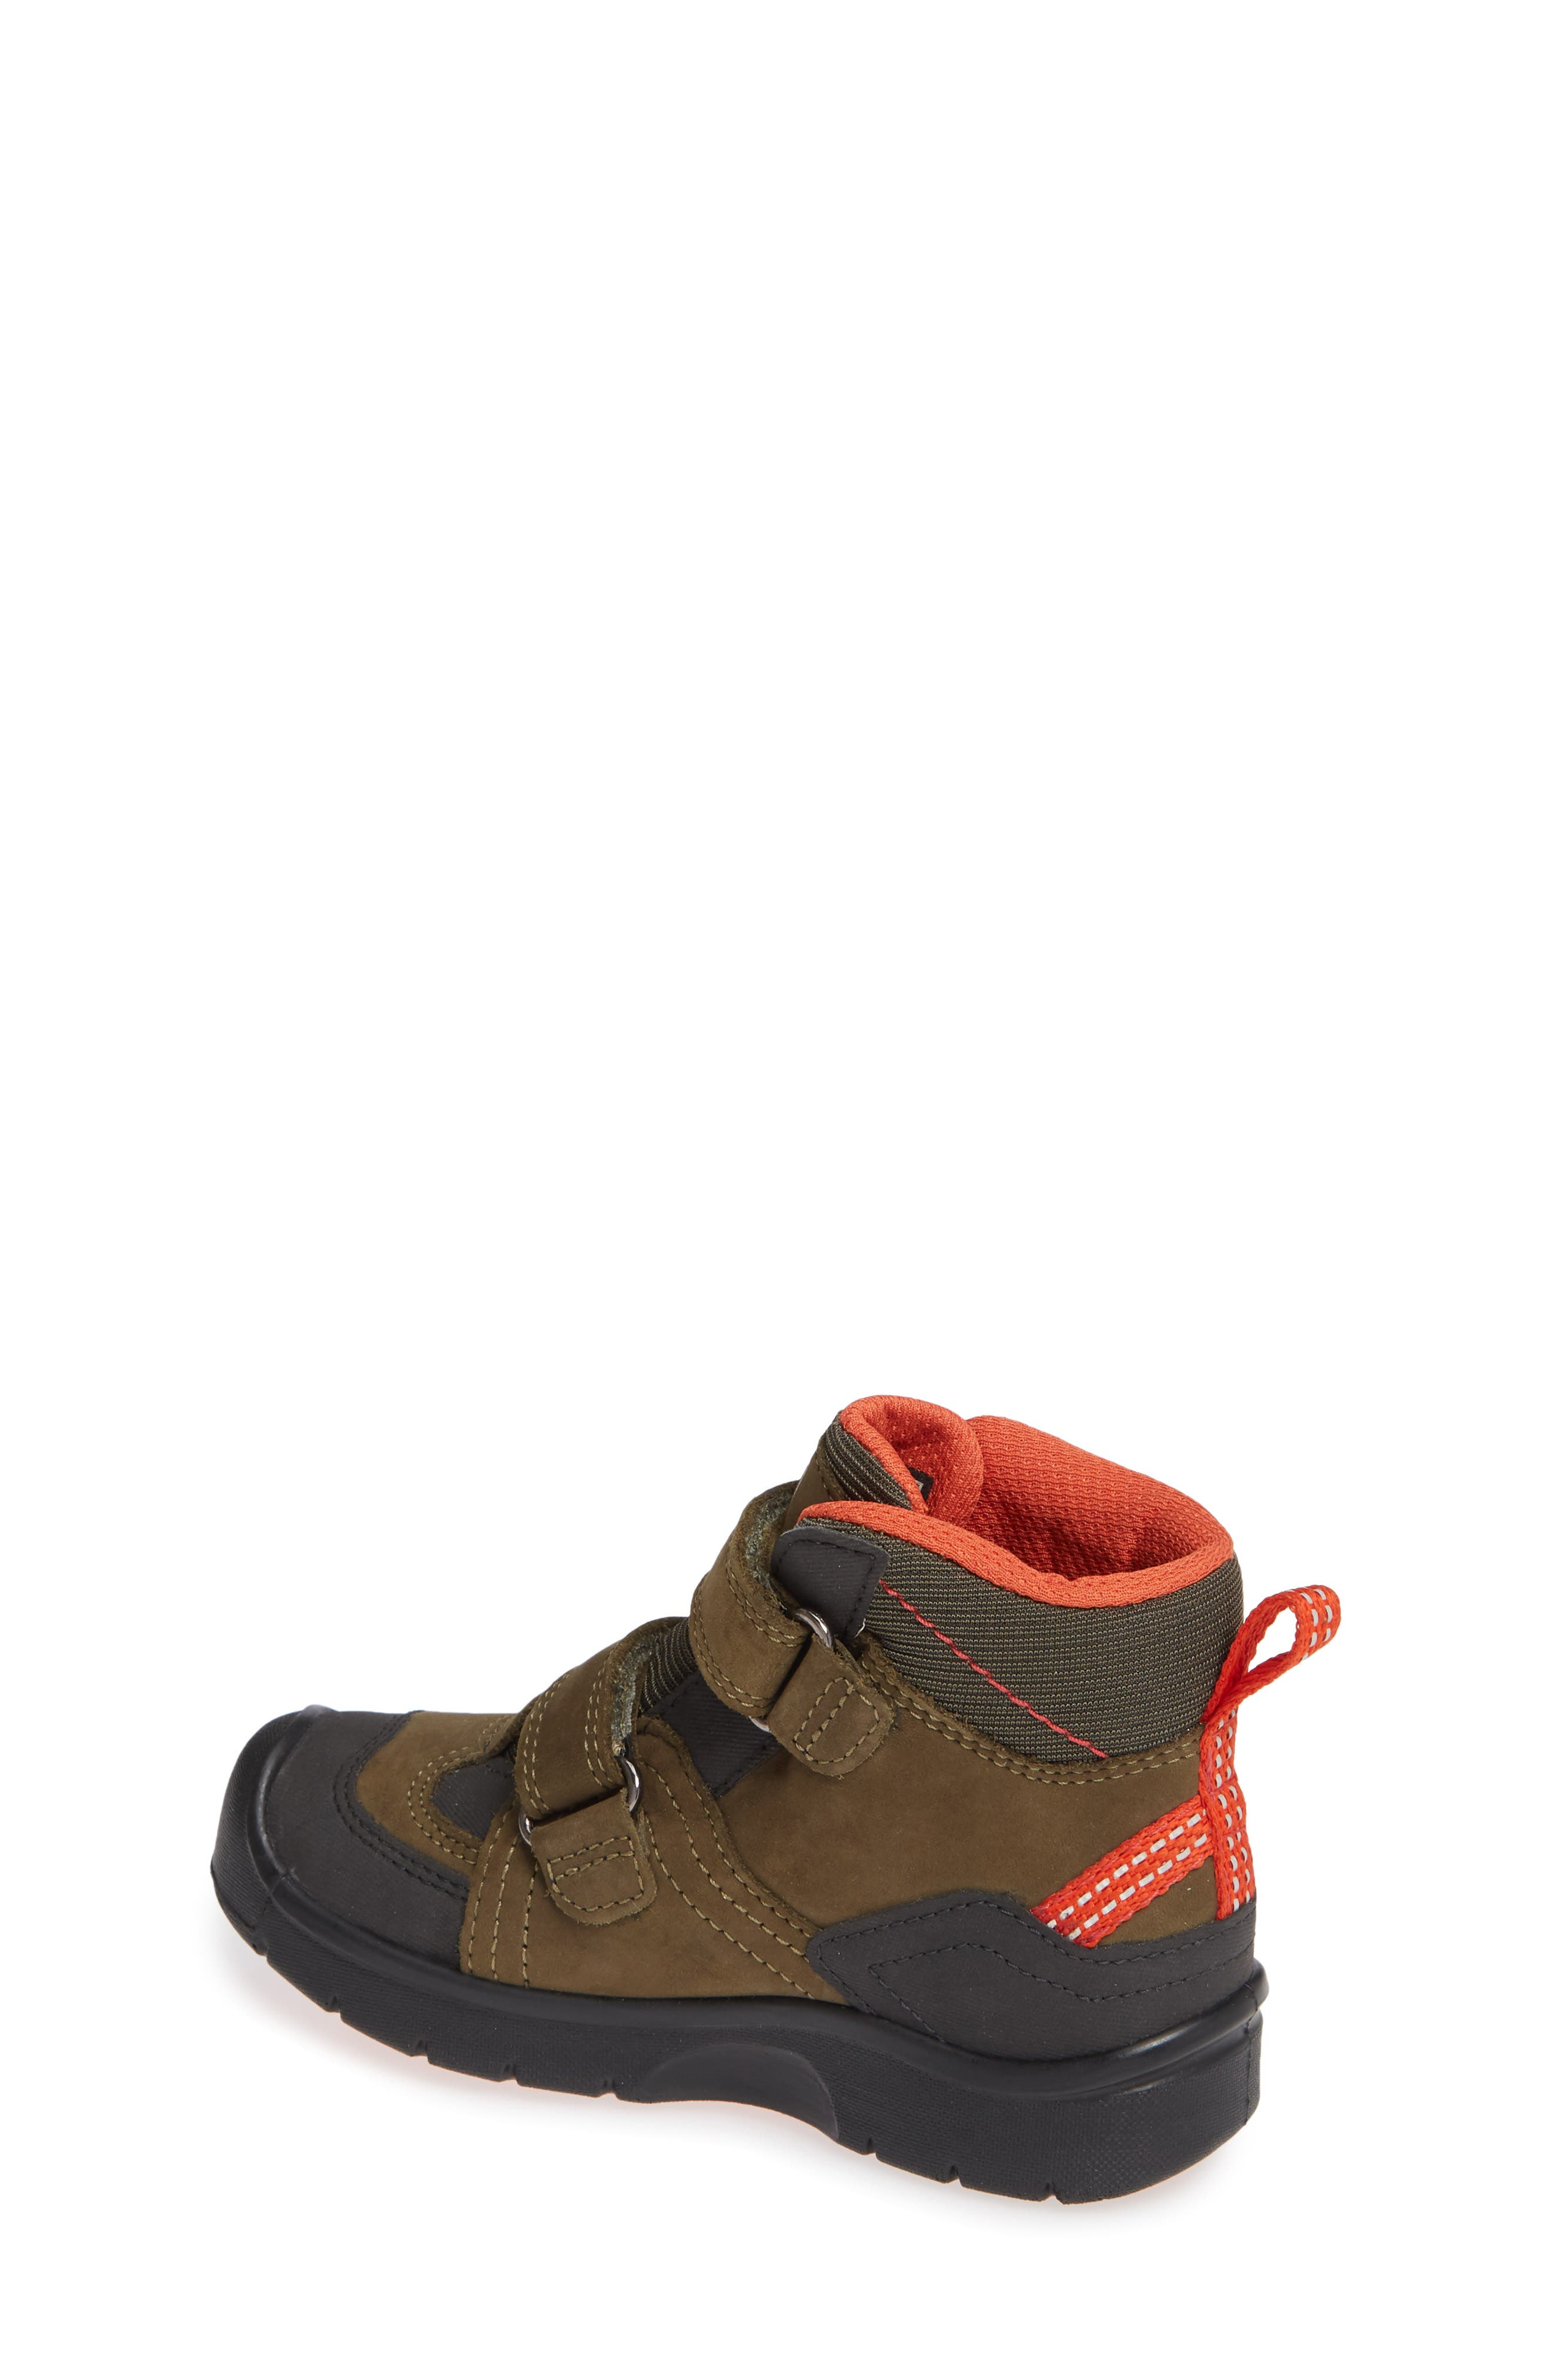 Hikeport Strap Waterproof Mid Boot,                             Alternate thumbnail 6, color,